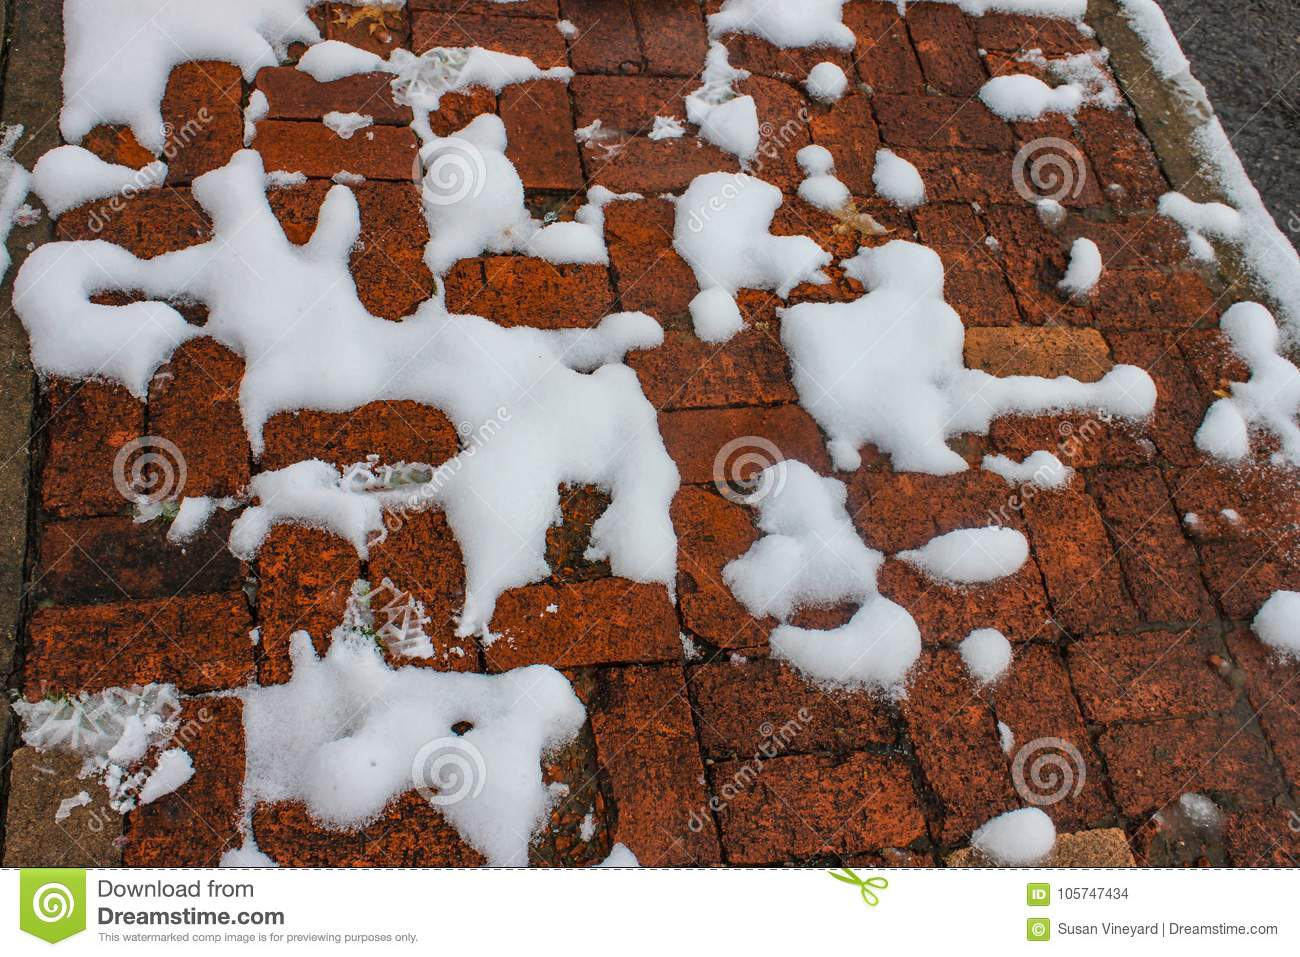 Snow melting but still visiable in blobs on orangish broken brick sidewalk